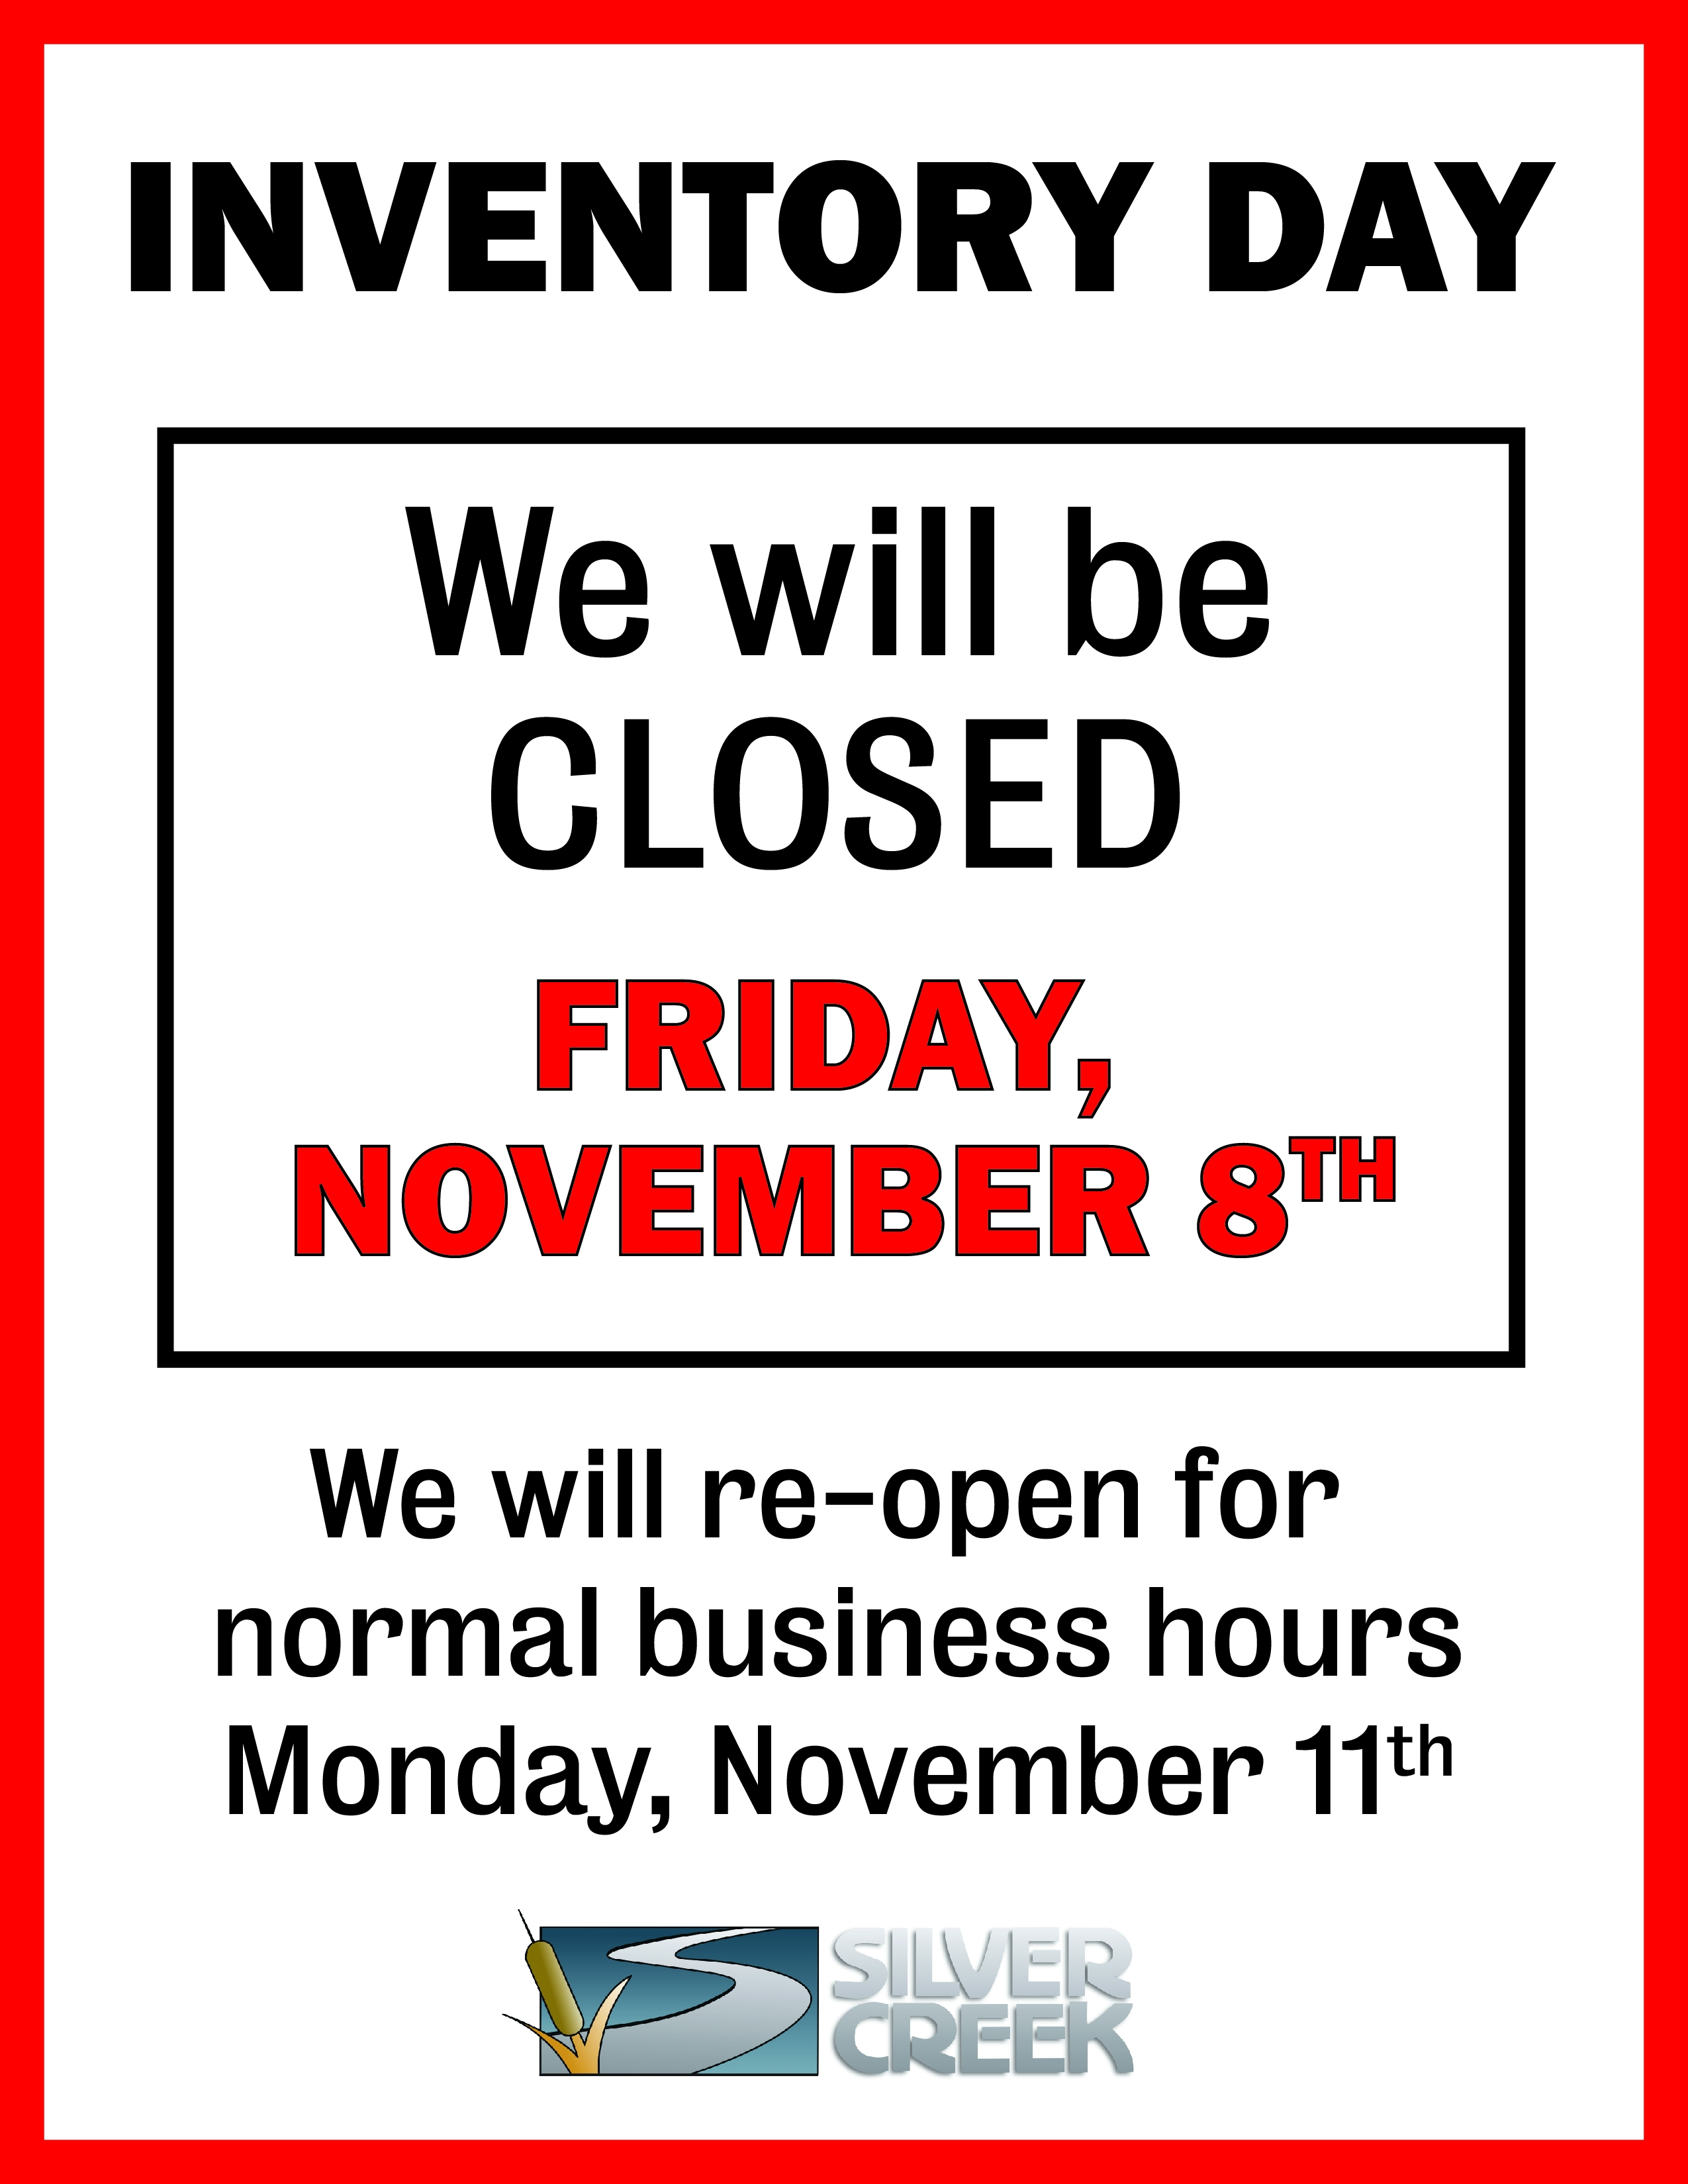 Inventory Day for All Branches EXCEPT for Jackson, WY